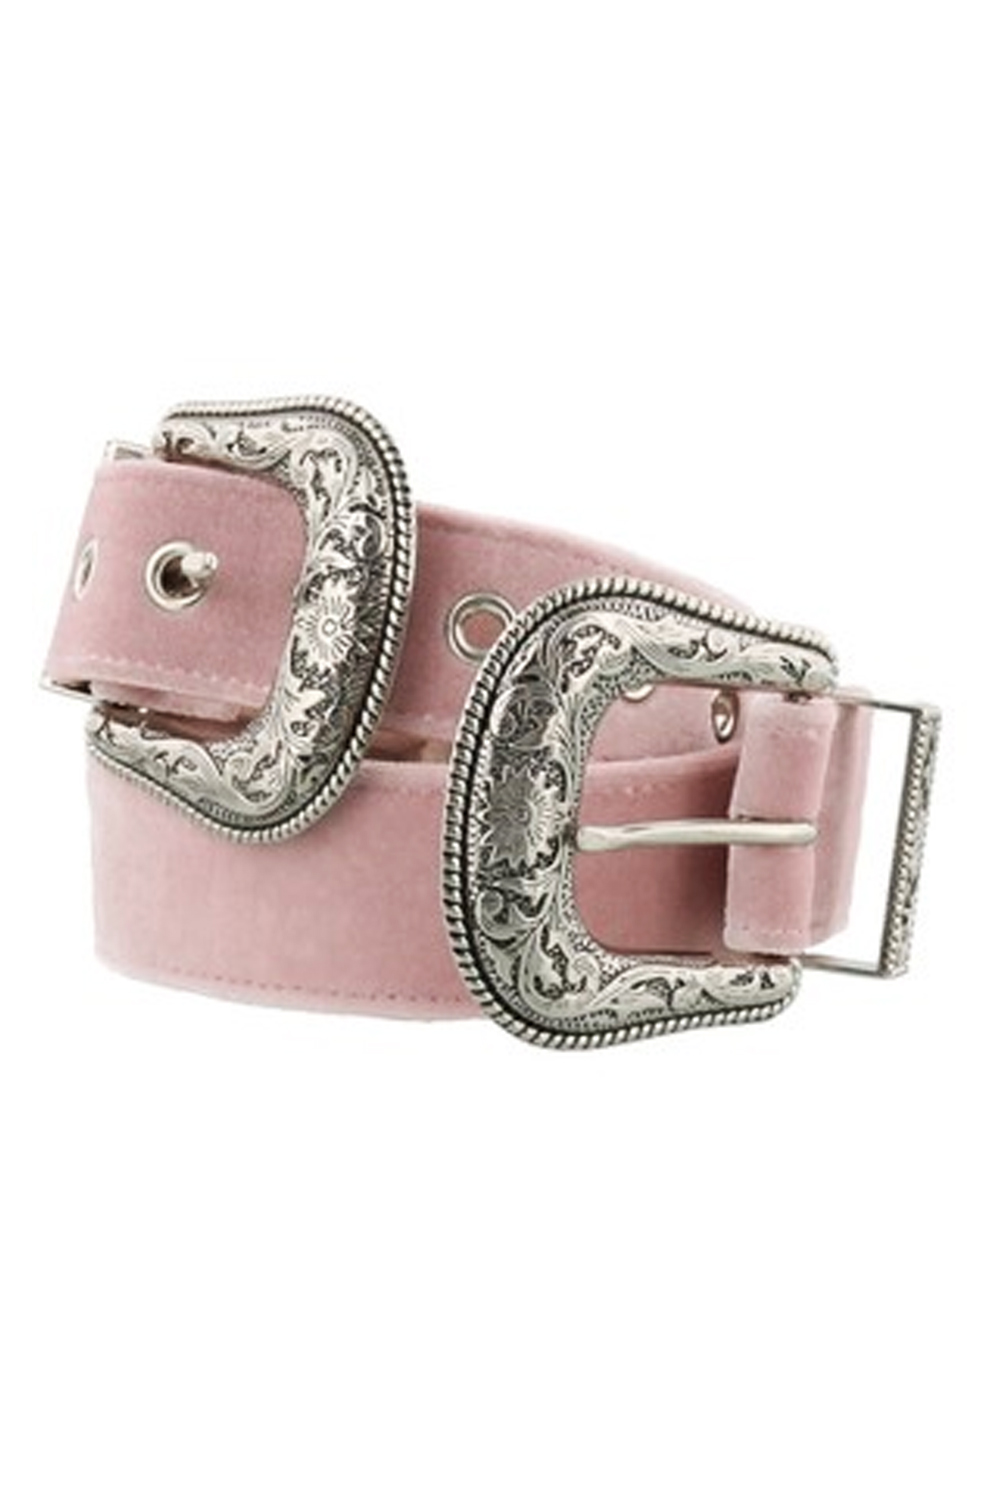 B- LOW THE BELT Baby Bri Bri Velvet Pink